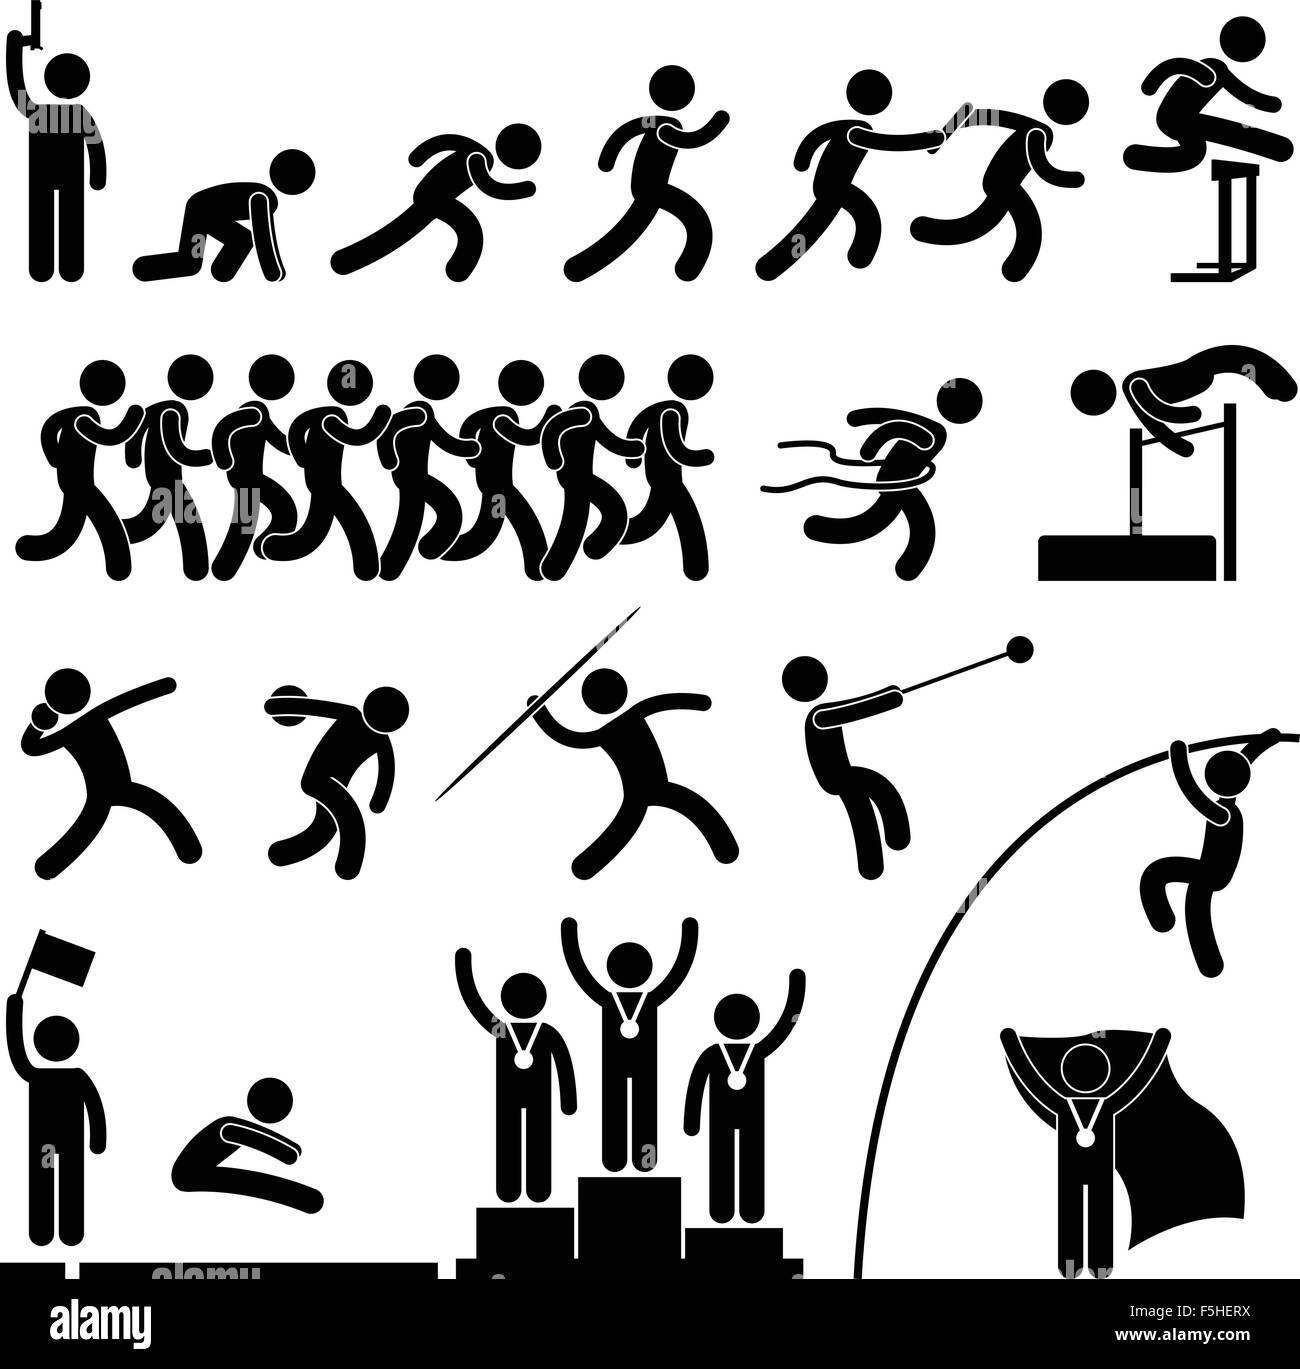 Sport Field and Track Game Athletic Event Winner Celebration Icon Symbol Signs - Stock Vector